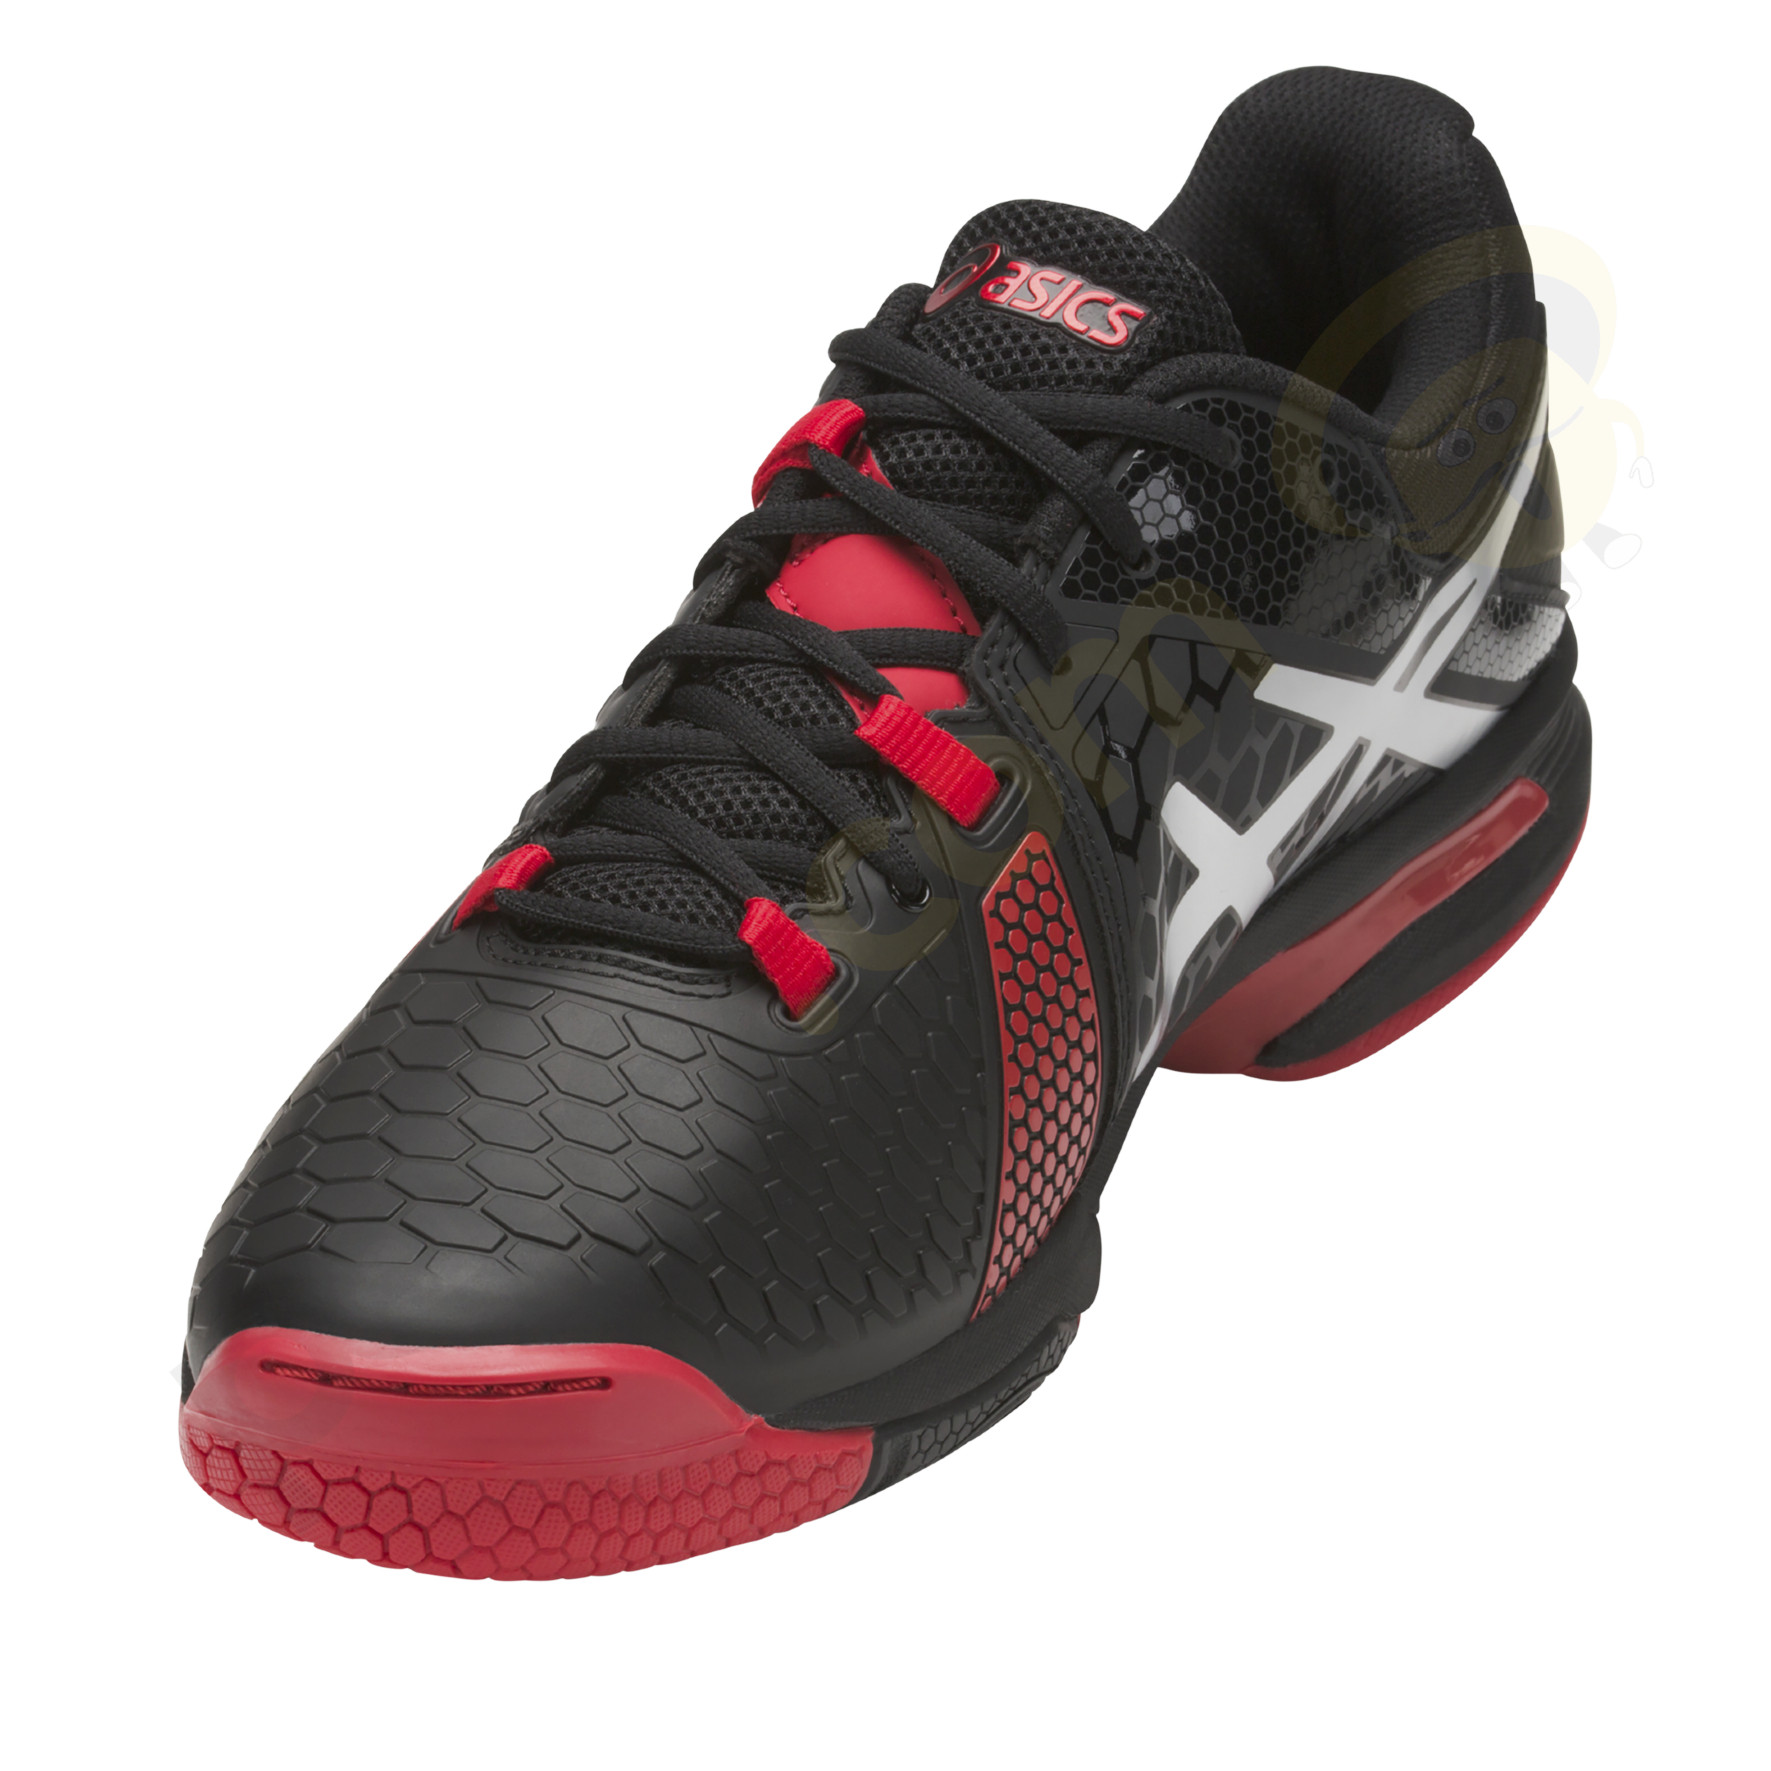 encanto de costo Zapatos 2018 50% rebajado Asics GEL-BLAST 7 Indoor shoes | pepe7.com